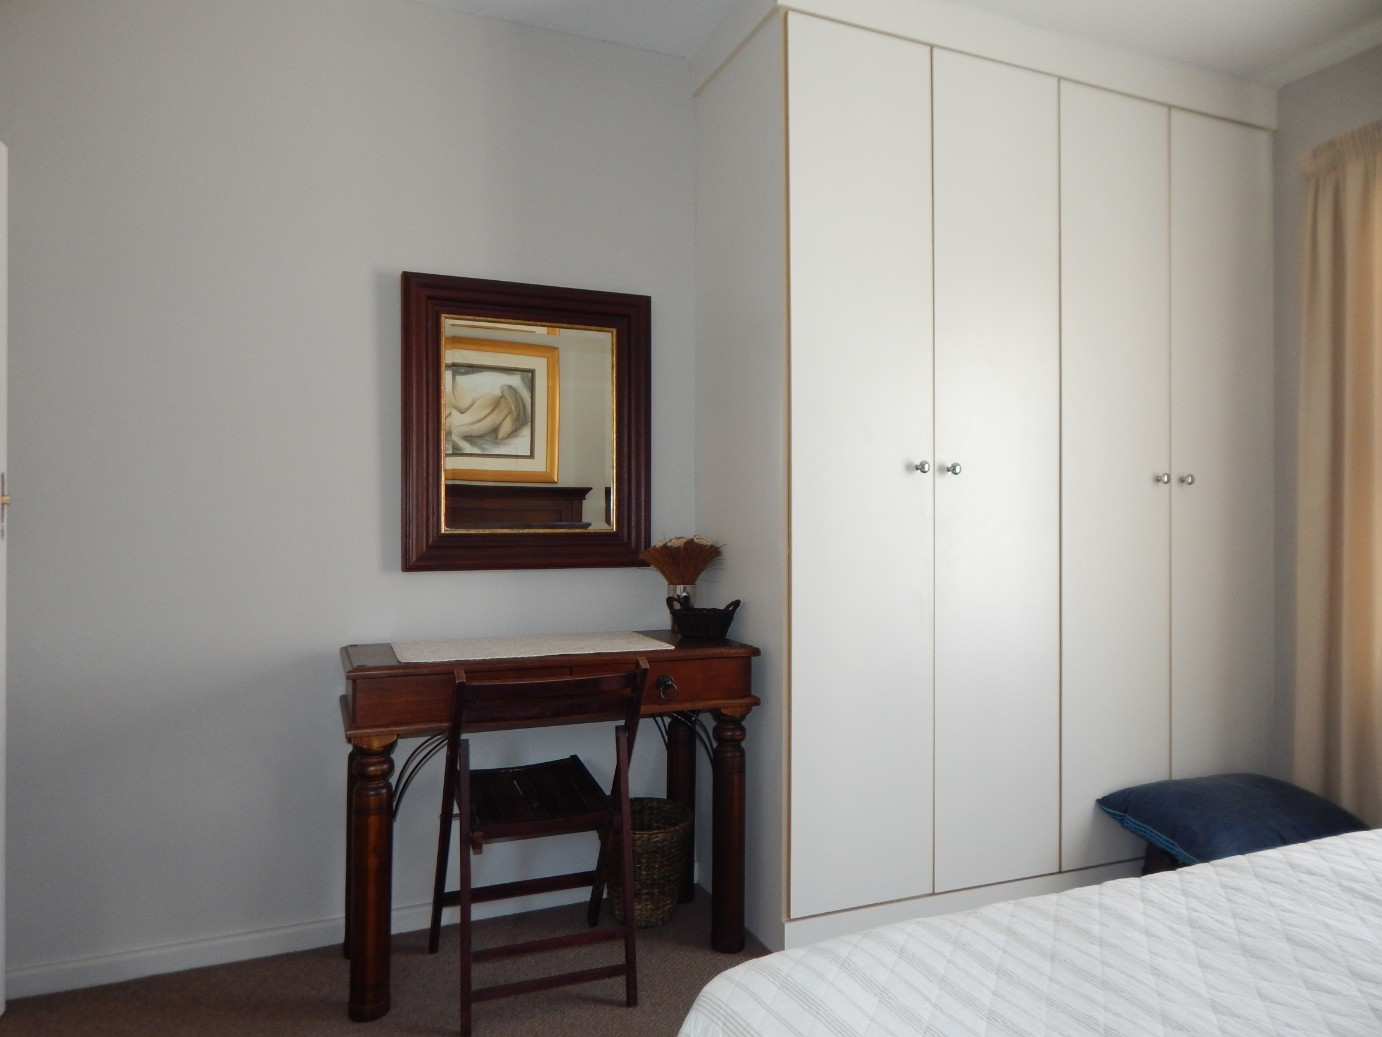 3 Bedroom Apartment for sale in Diaz Beach ENT0080239 : photo#14